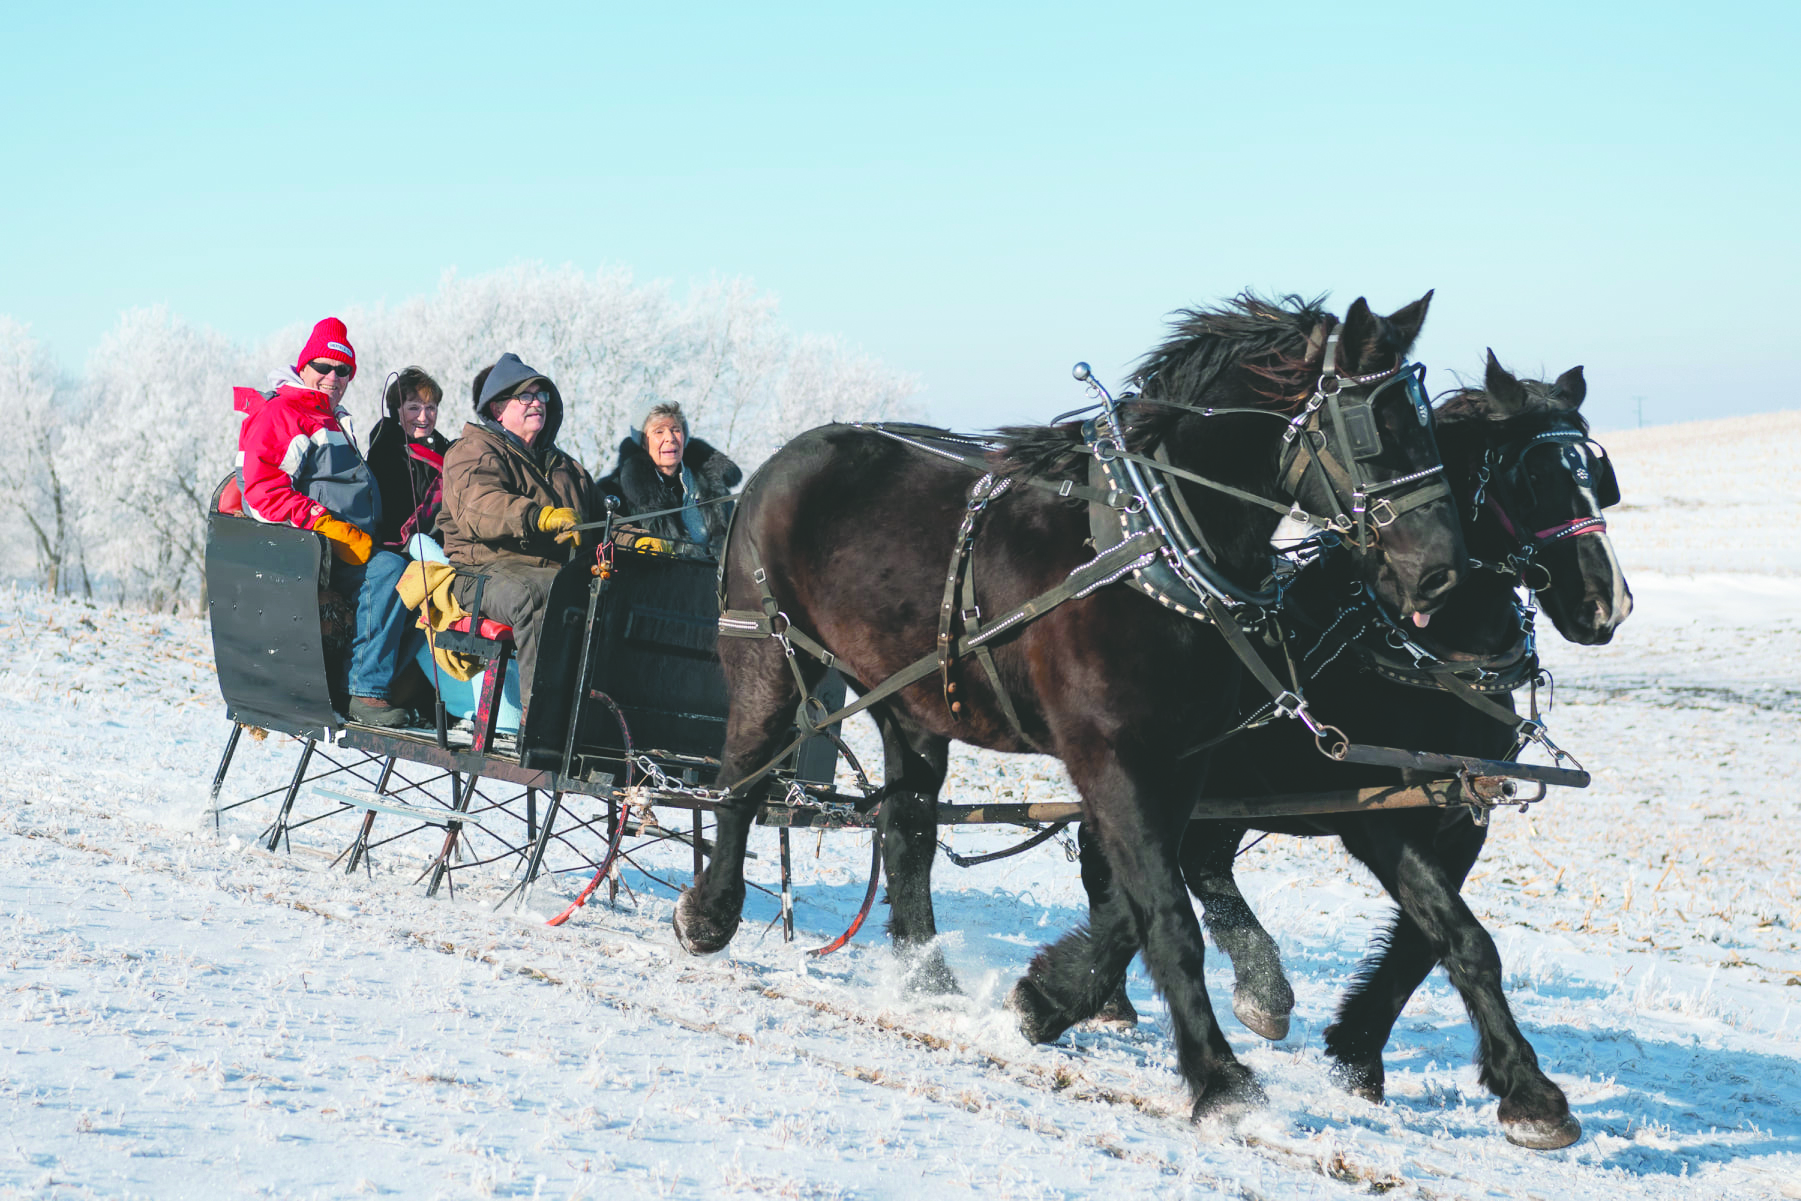 Mike and Kathy Knudtson, Lake Mills, hired sleigh and horses from Eugene Jacobson, Kiester, Minn., and took family and friends on a sleigh ride Saturday afternoon. This is the second year the Knudtsons have enjoyed a sleigh ride for their family Christmas party. Afterwards, they enjoyed lunch in their heated garage.